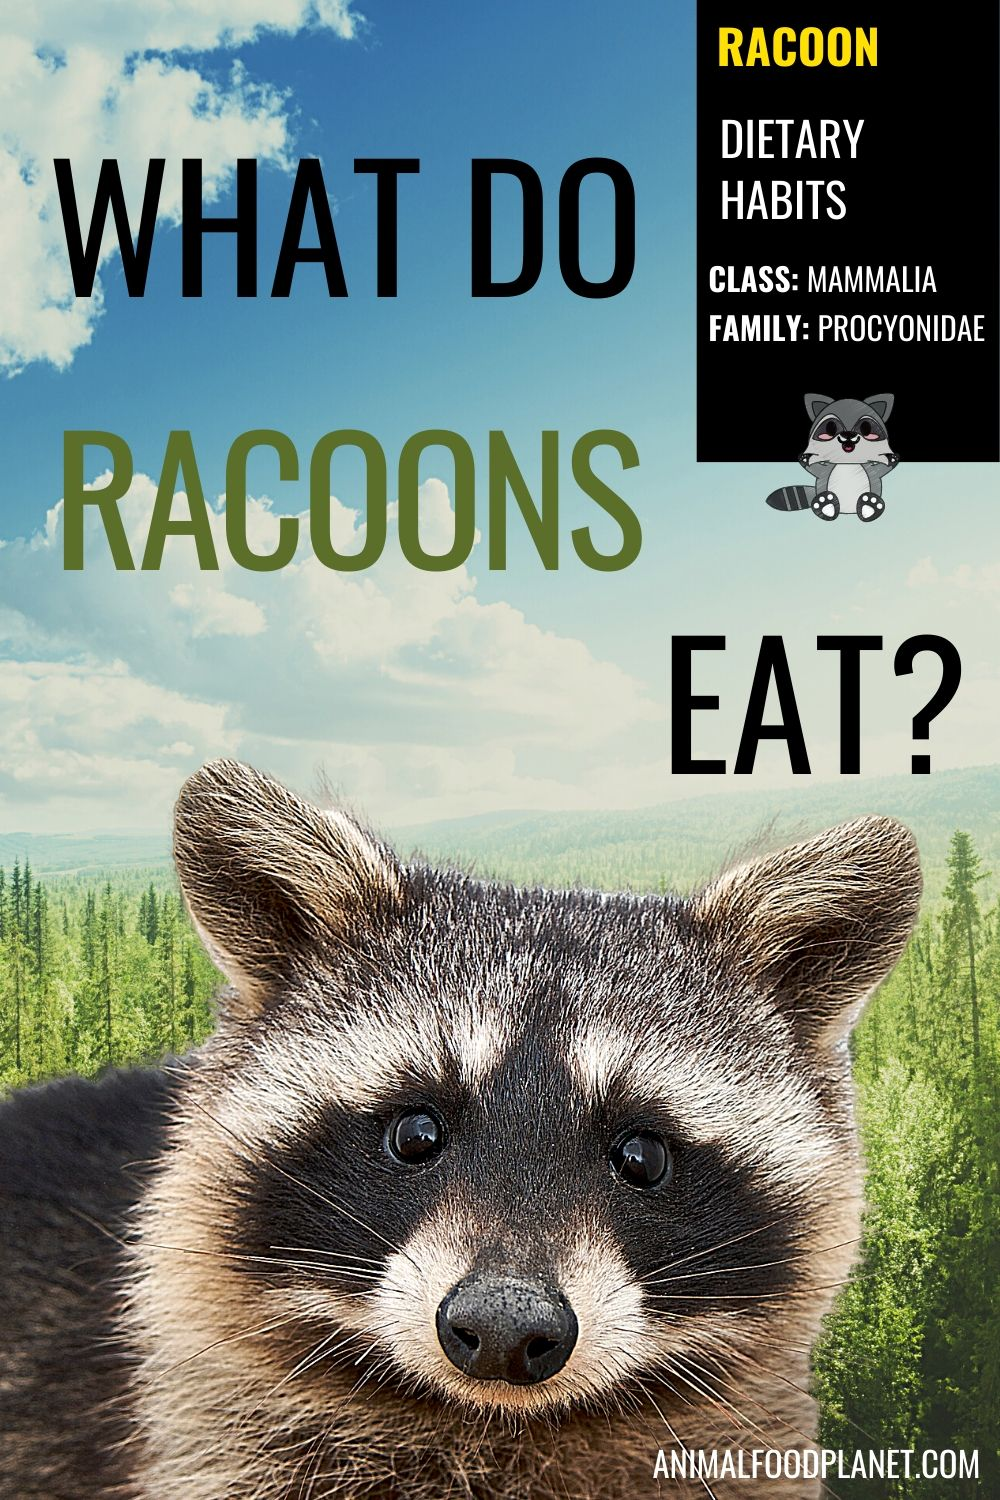 What Do Racoons Eat?